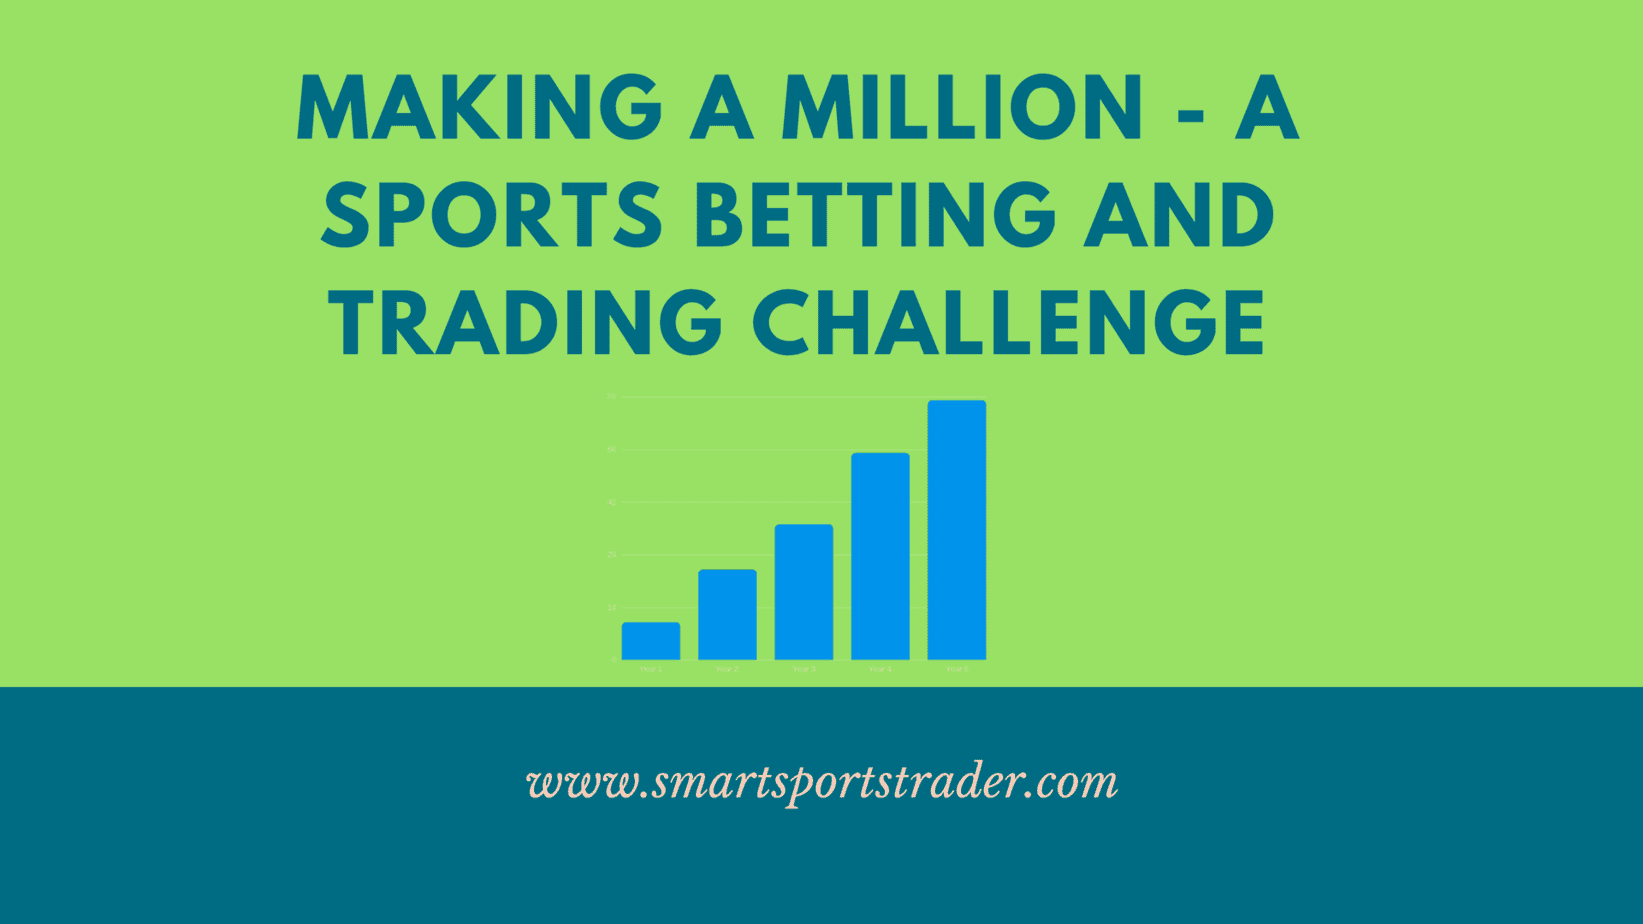 Sports Betting and Trading Challenge